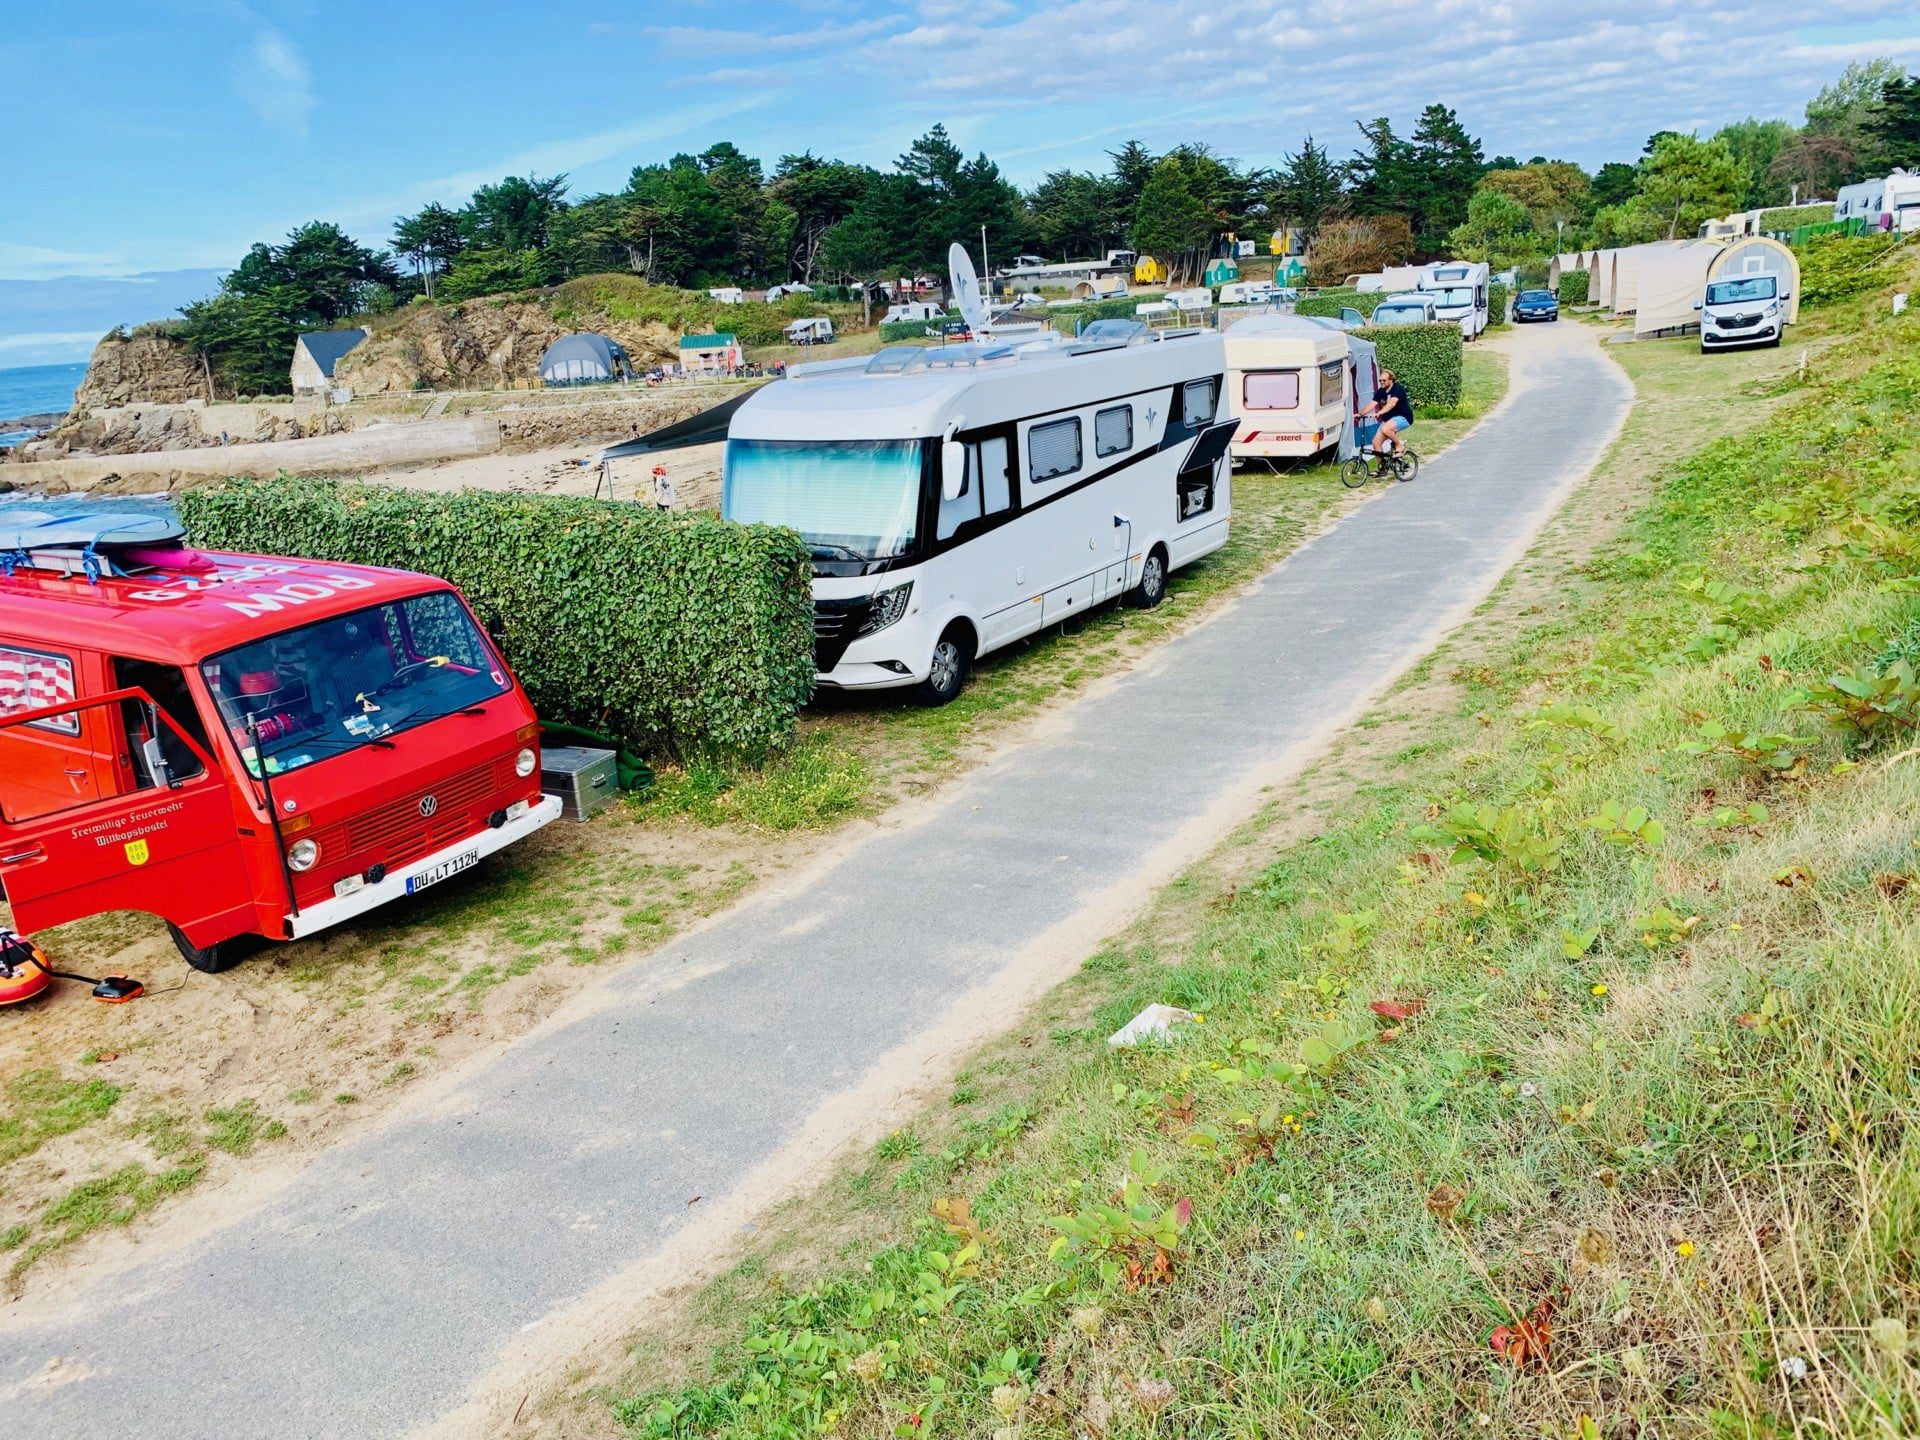 camping-car-plage-soleil-emplacement-pitch